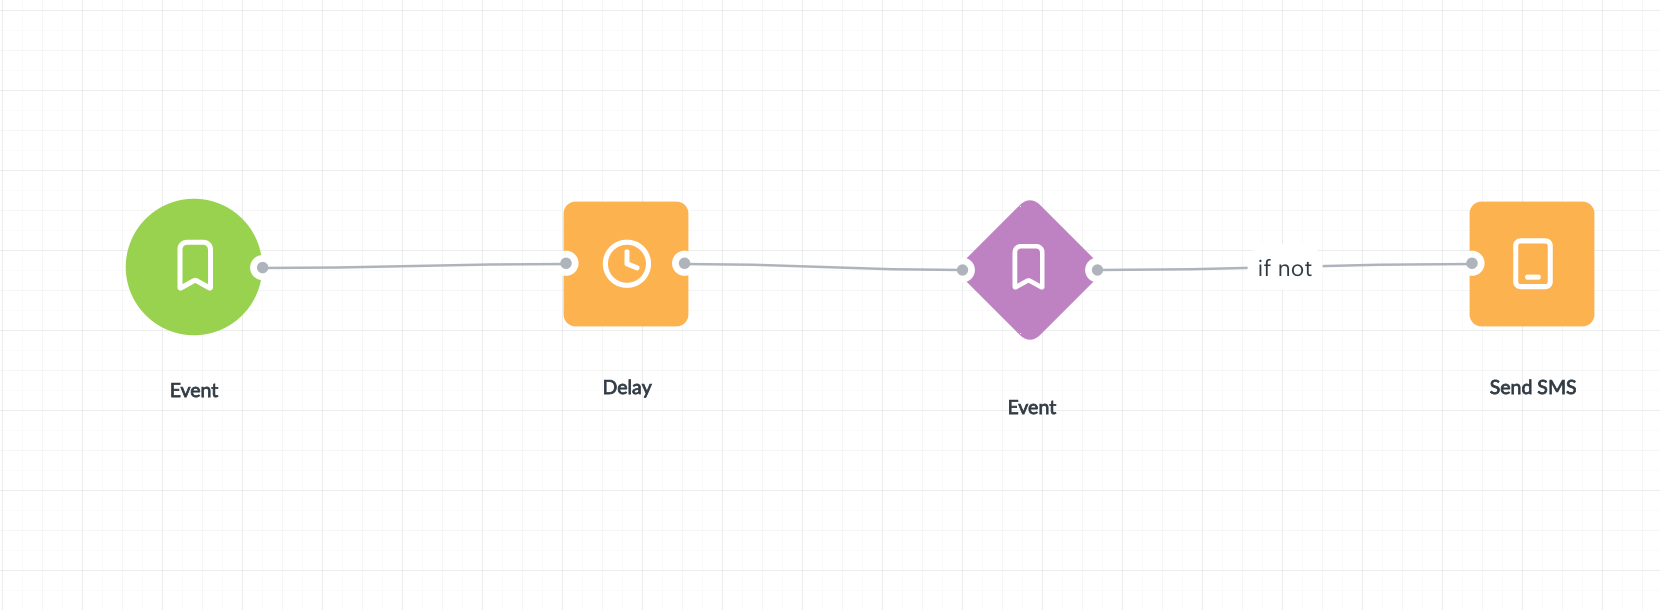 Notice that condition check will work properly only if you use delay e.g. one day. If you don't set delay, condition check will take place immediately after first event occurrence.